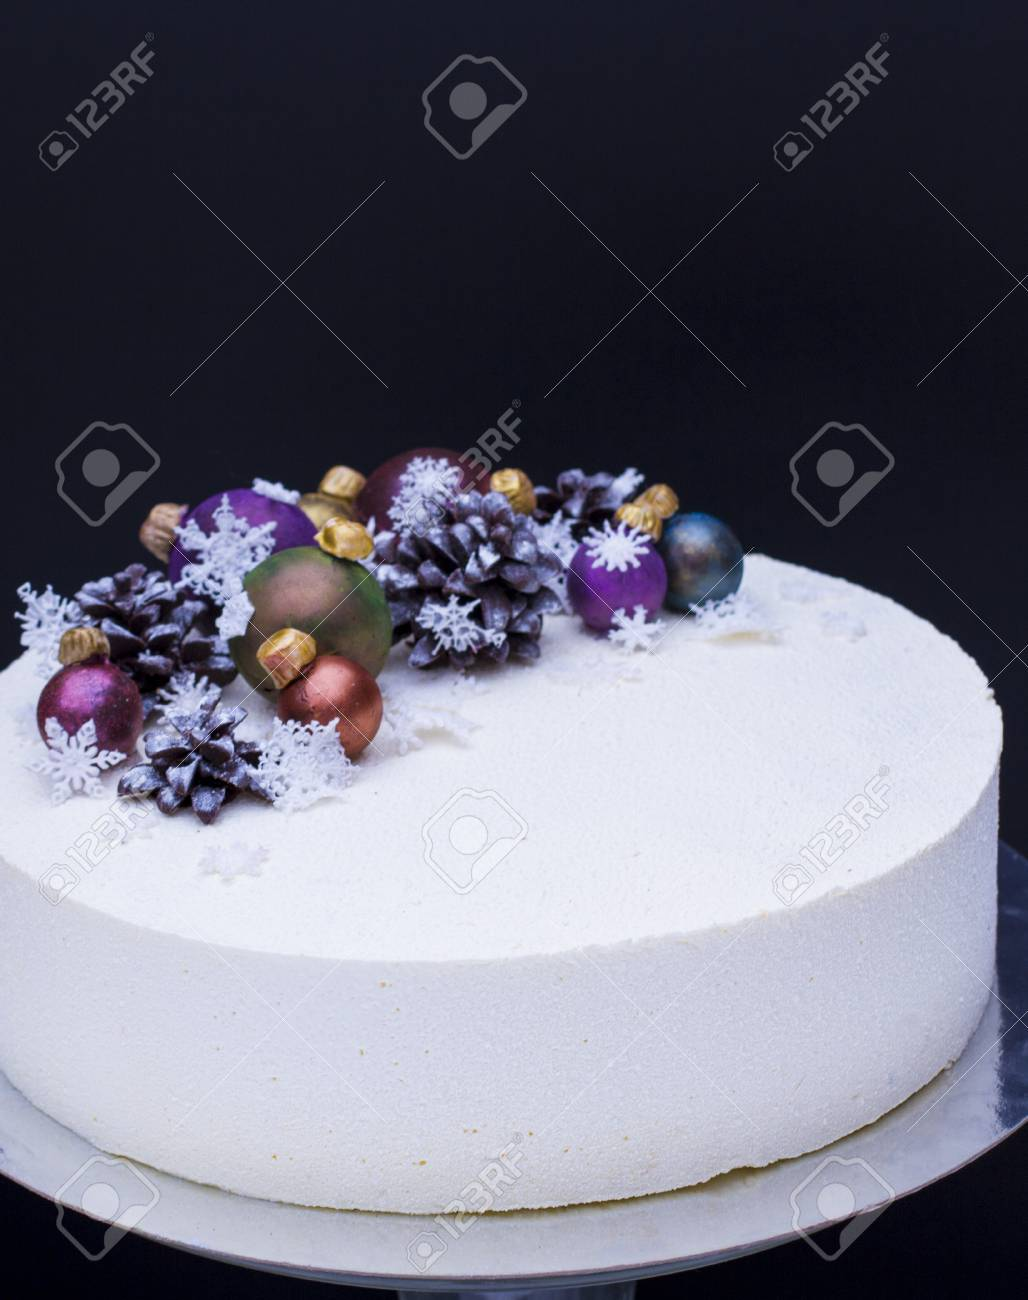 A Cake For A Christmas Holiday Or A New Year A Cake With Chocolate